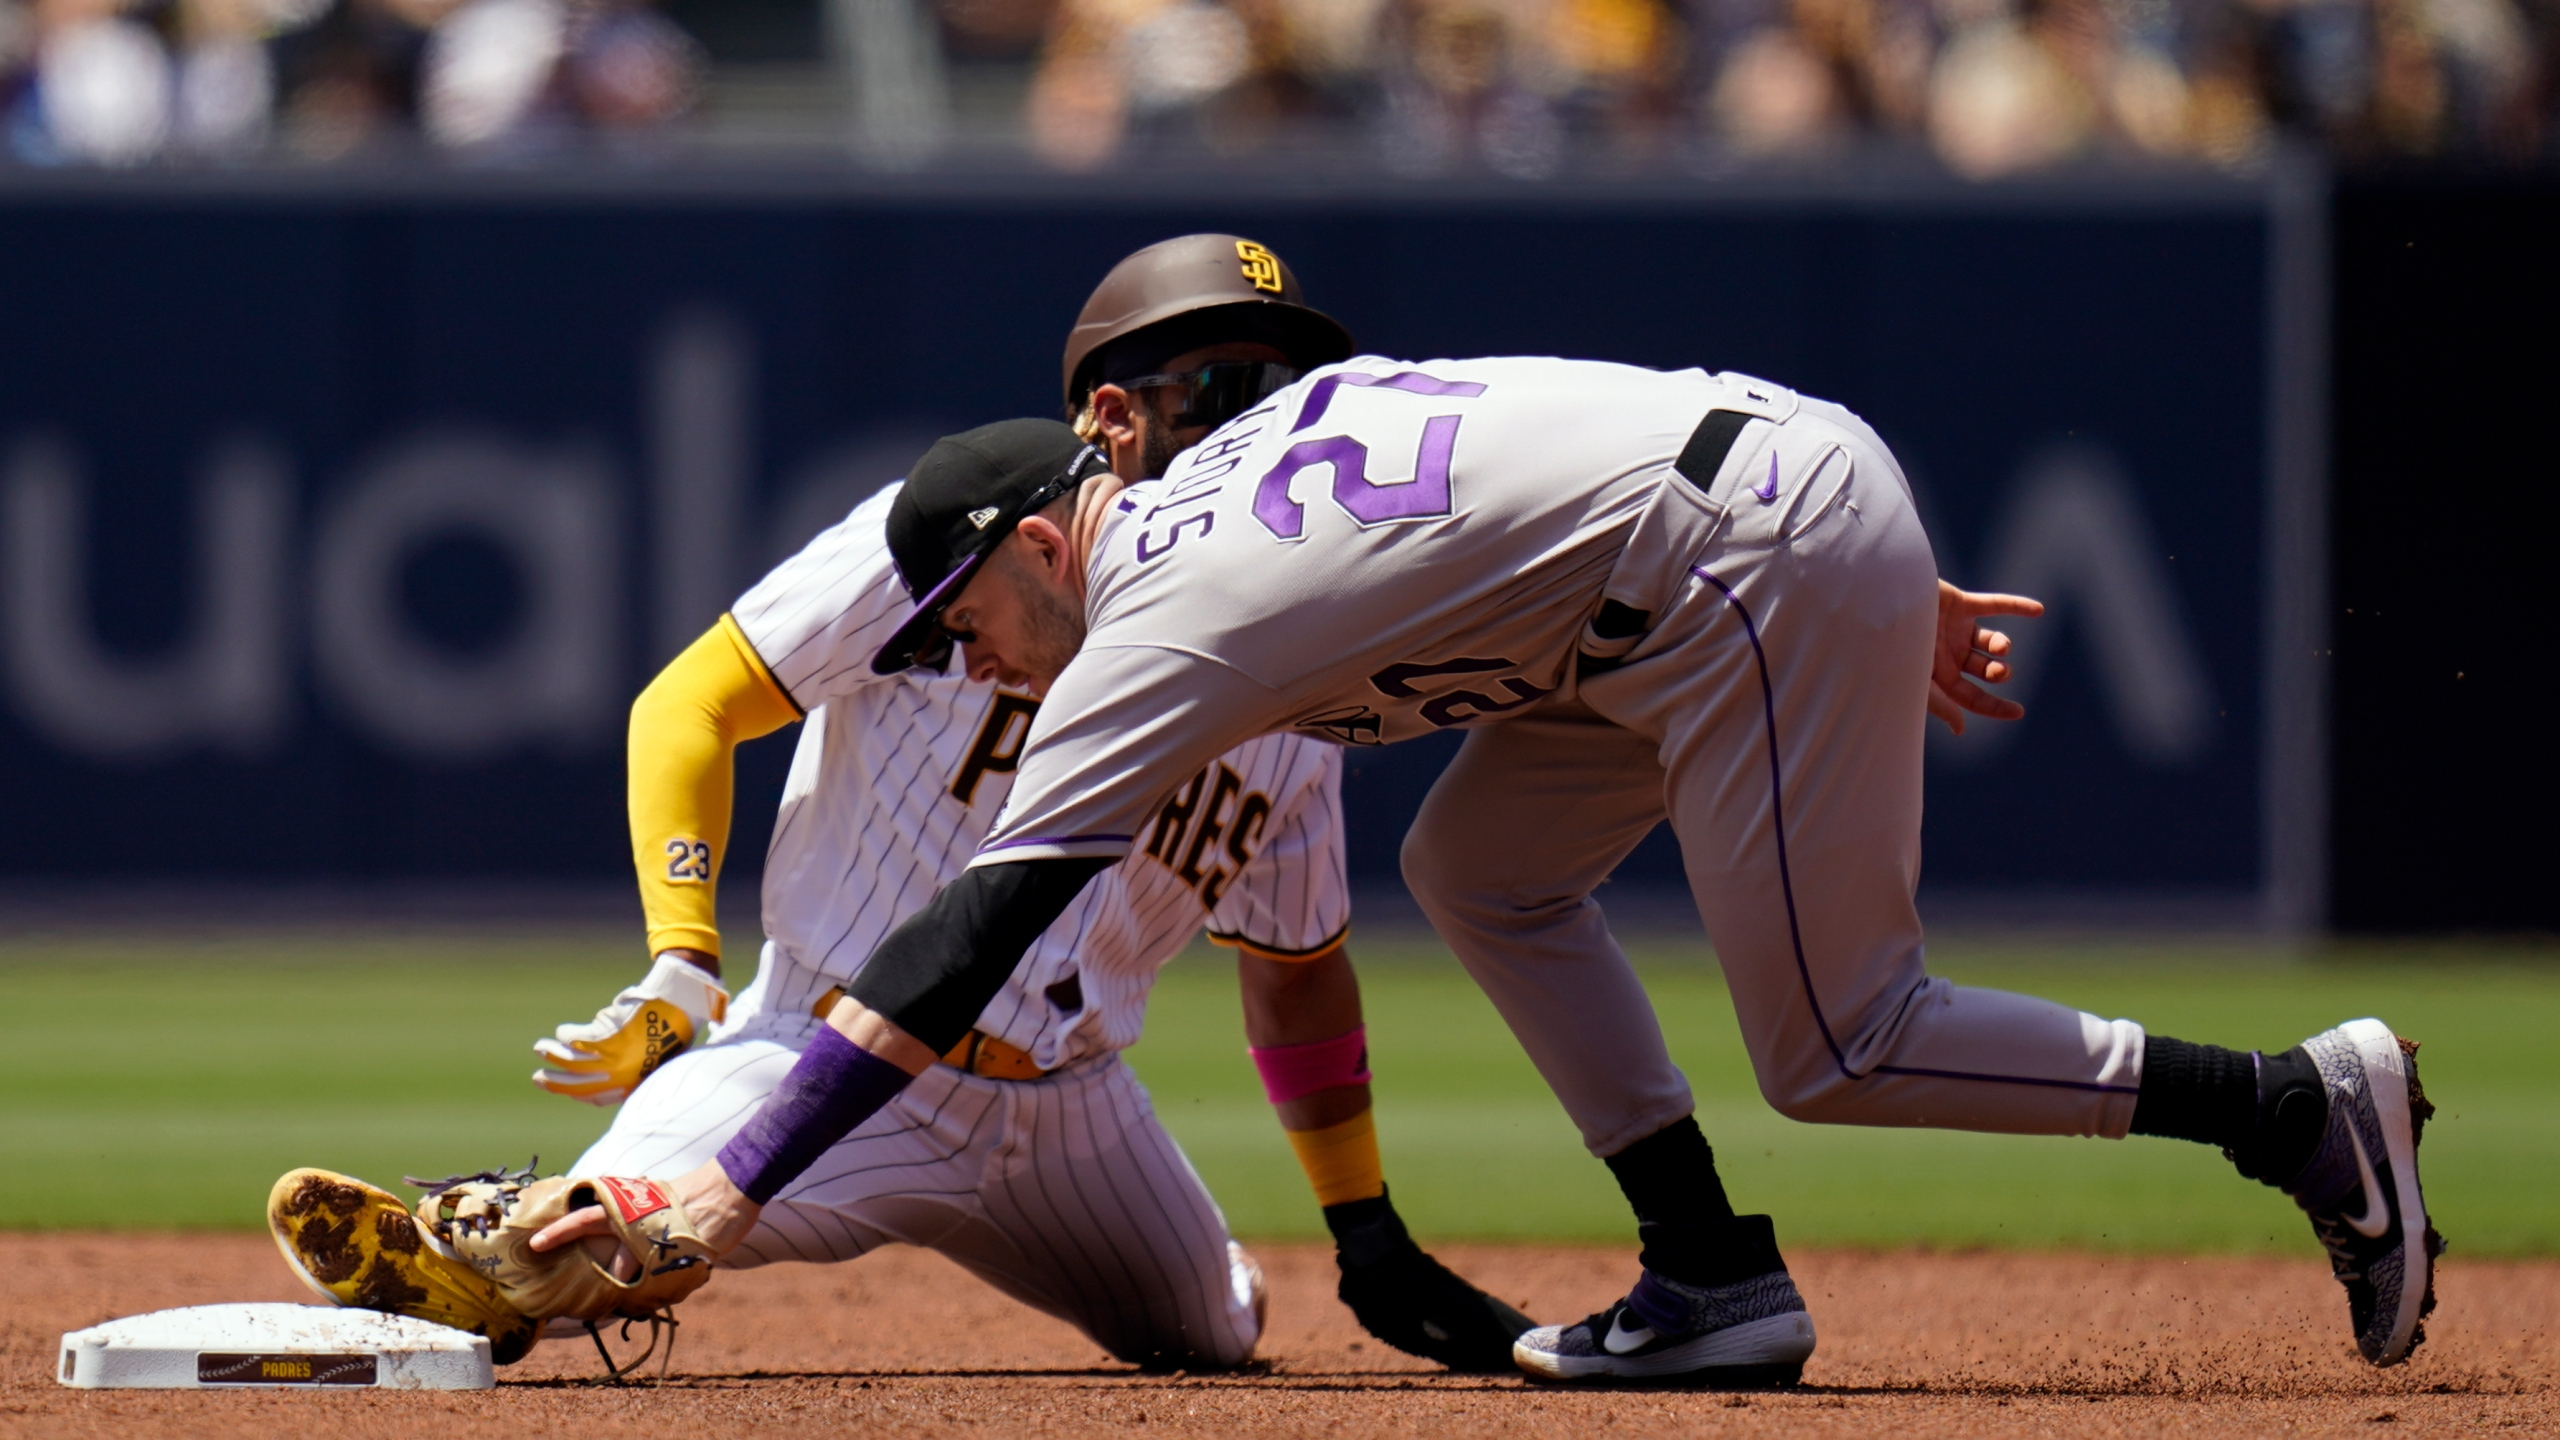 Colorado Rockies shortstop Trevor Story, front, reaches with his glove as San Diego Padres' Fernando Tatis Jr. safely steals second base